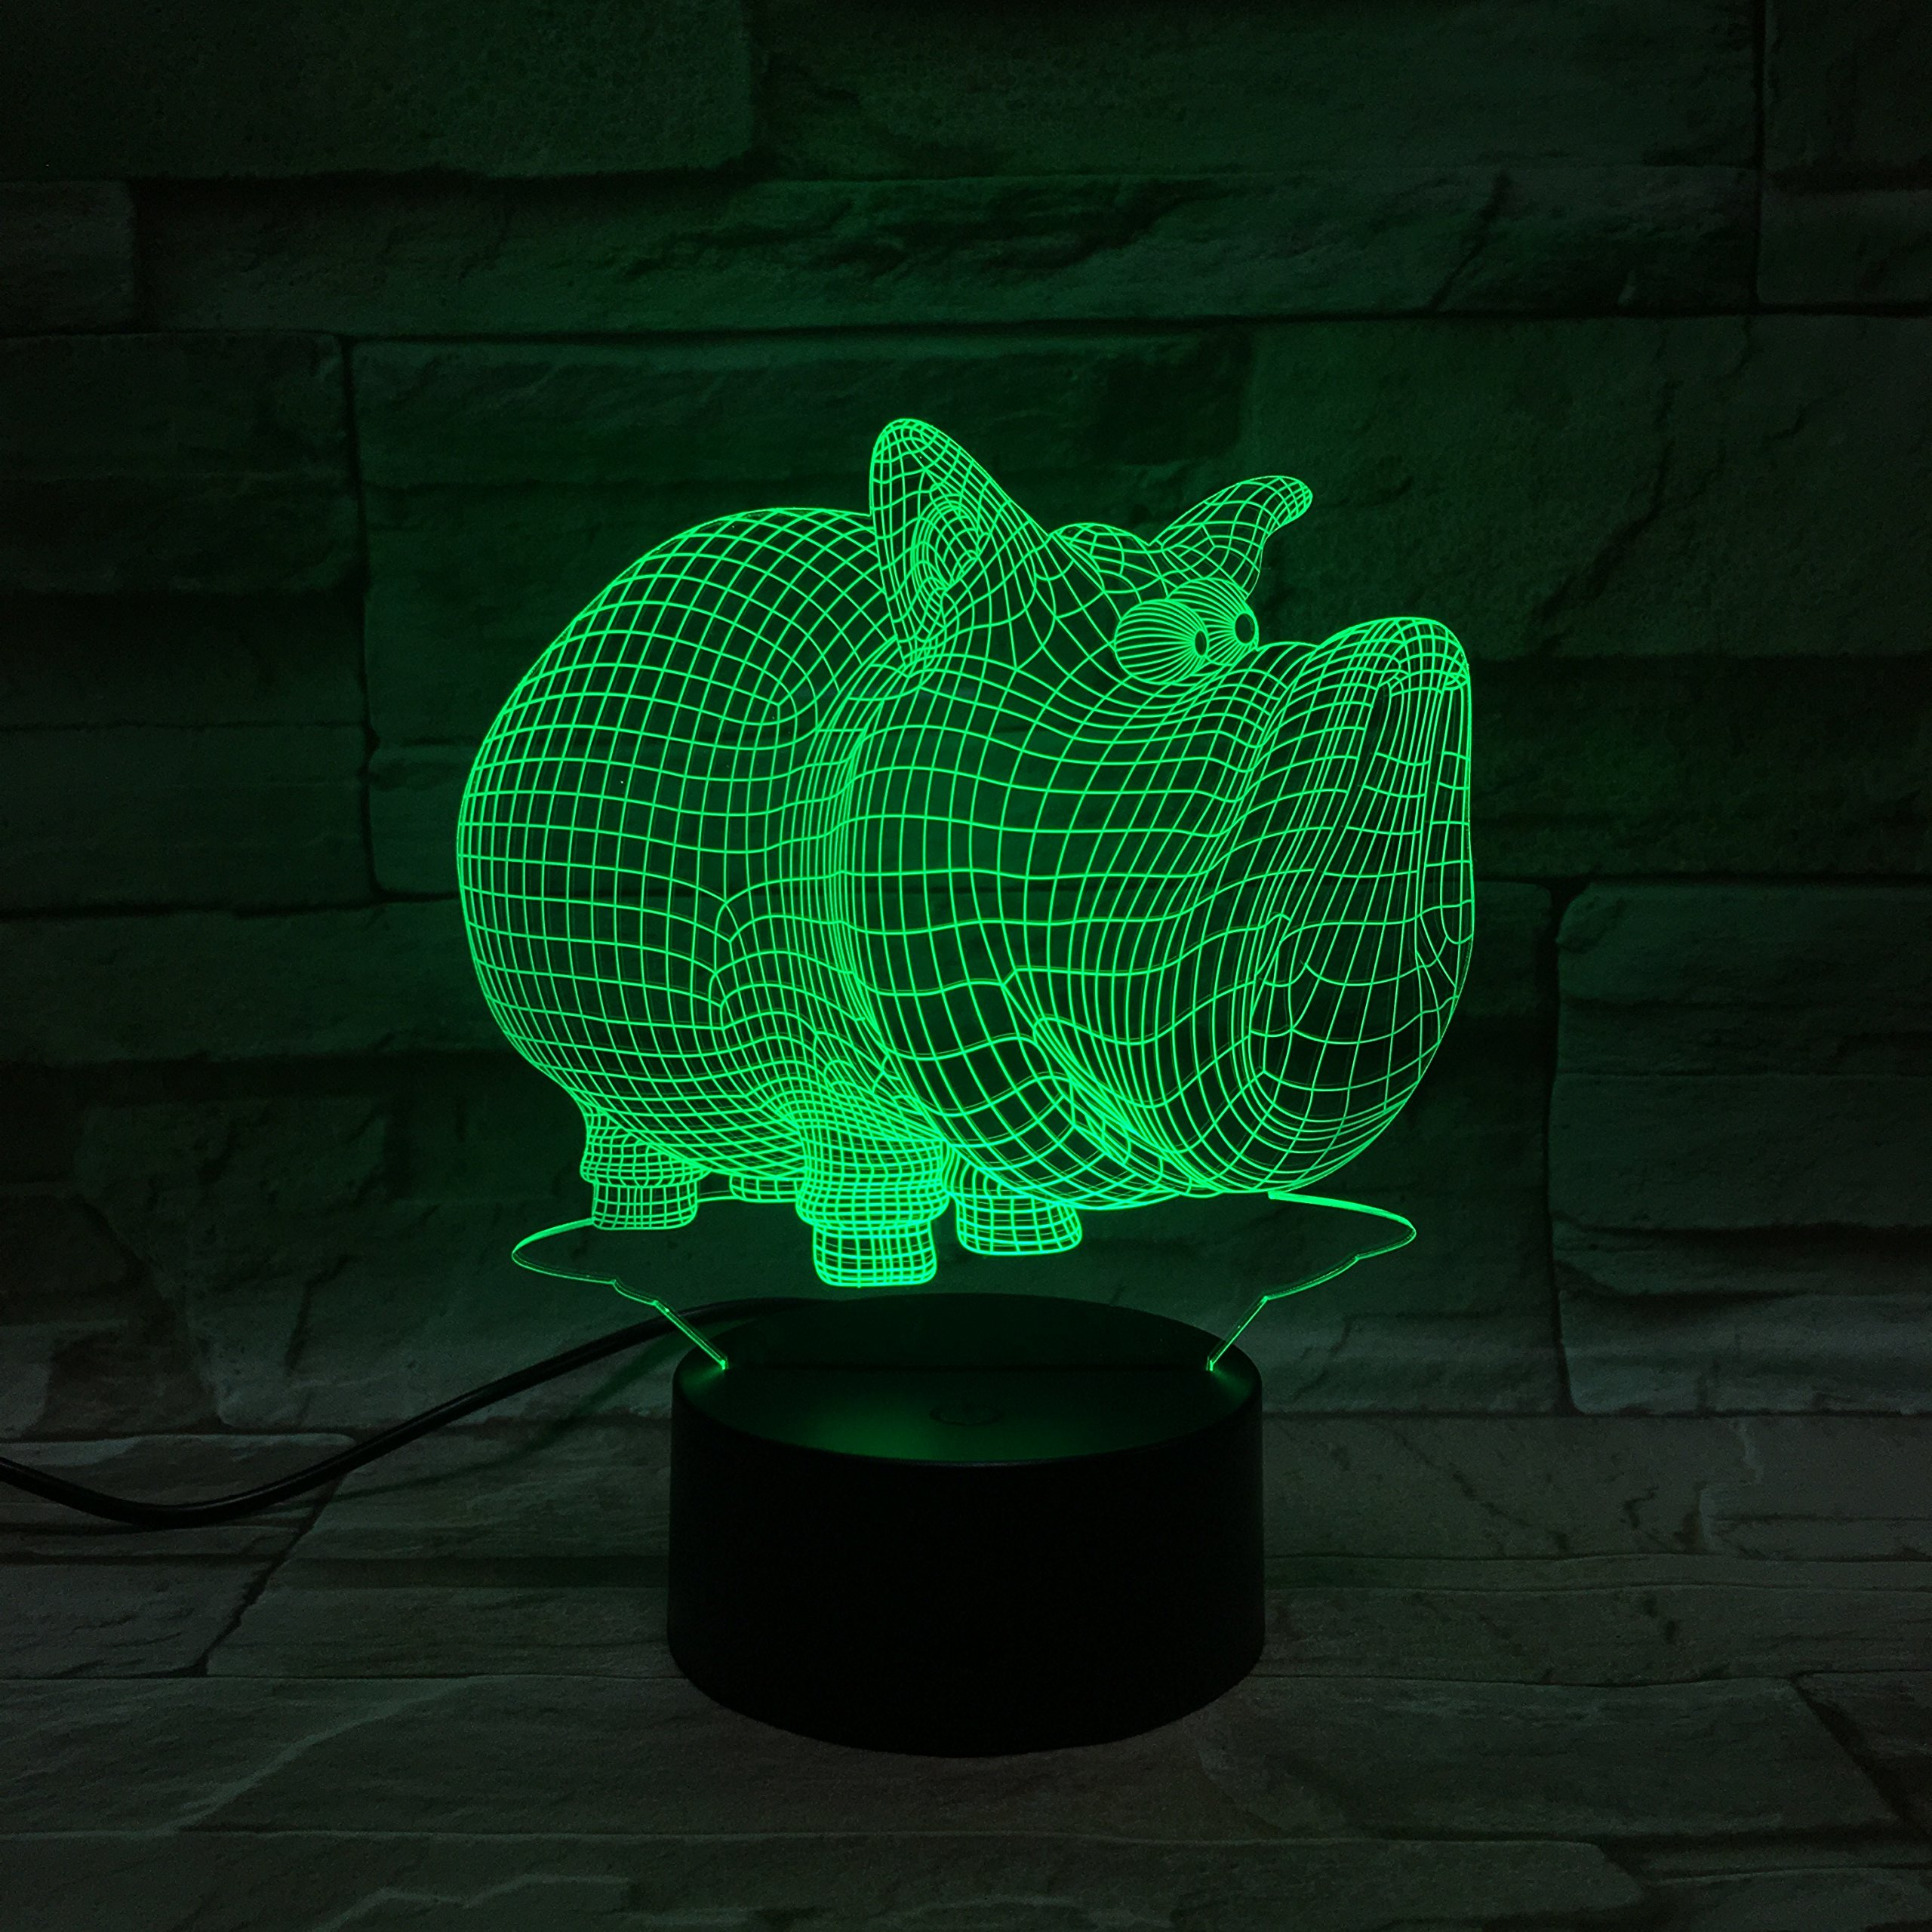 Gift Ideas Pig Night Lights 3D Illusion lamp Animal Light Led Desk Lamps Unique Anniversary Gifts for Baby Home Decor Office Bedroom Wedding Party Decorations Nursery Lighting 7 Color